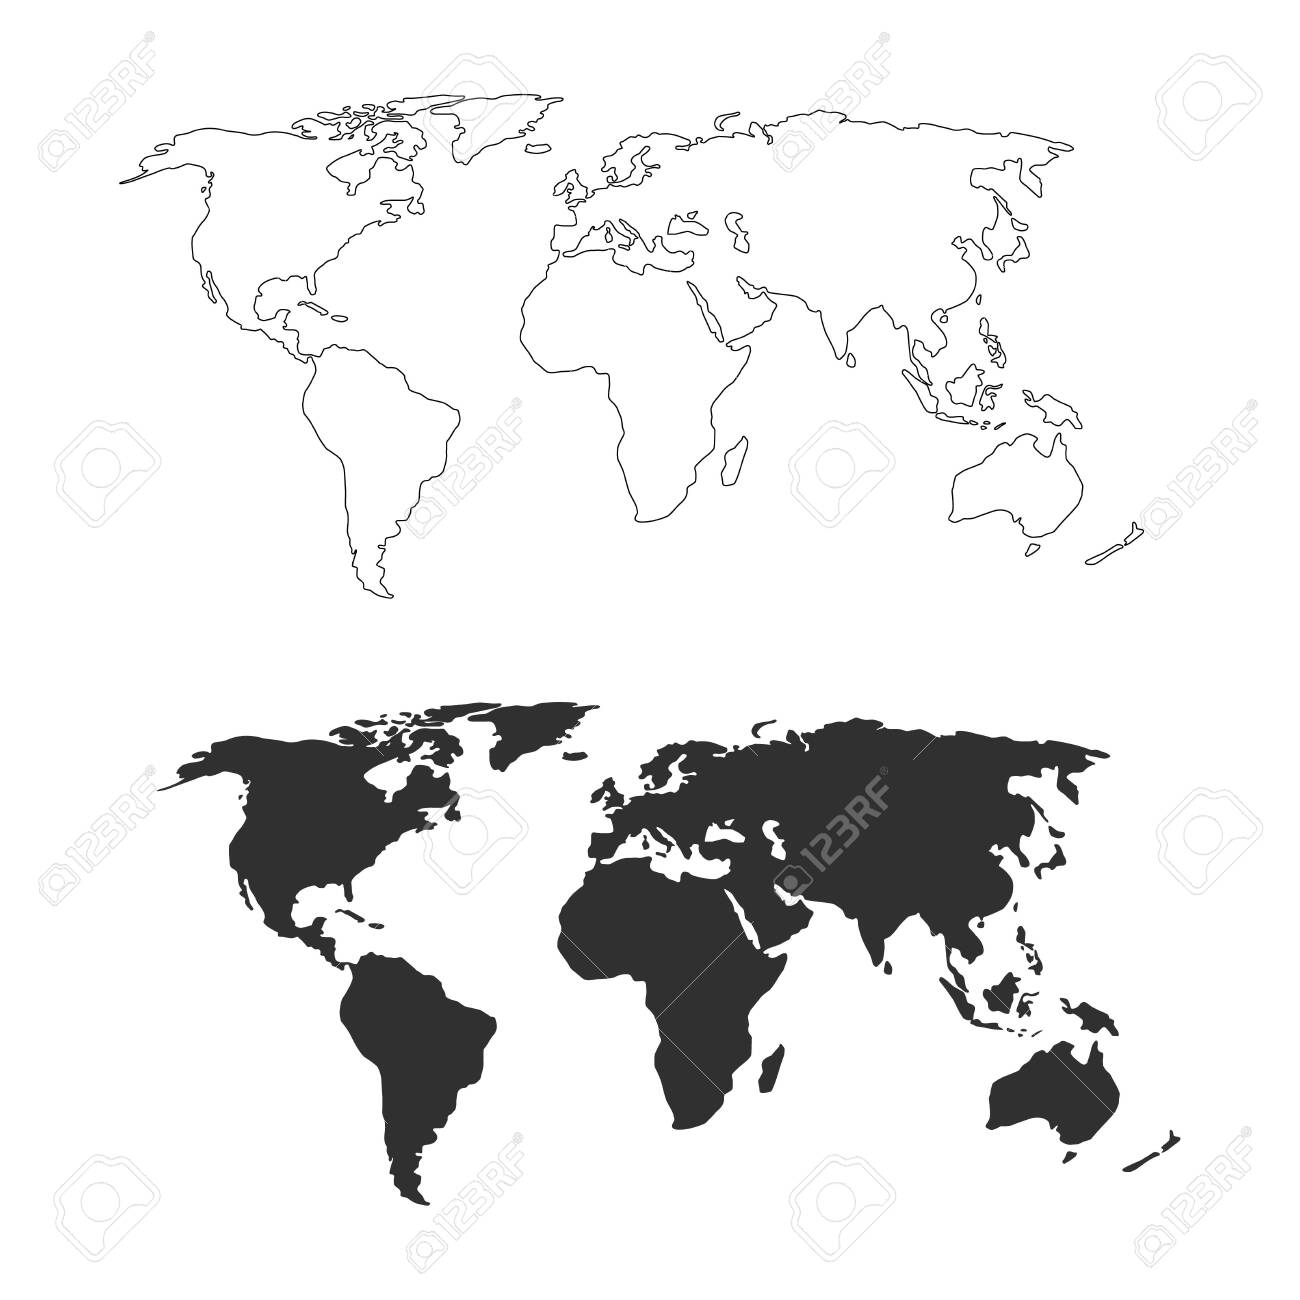 World Map Earth Monochrome Black White Map Template For Web Royalty Free Cliparts Vectors And Stock Illustration Image 136442936